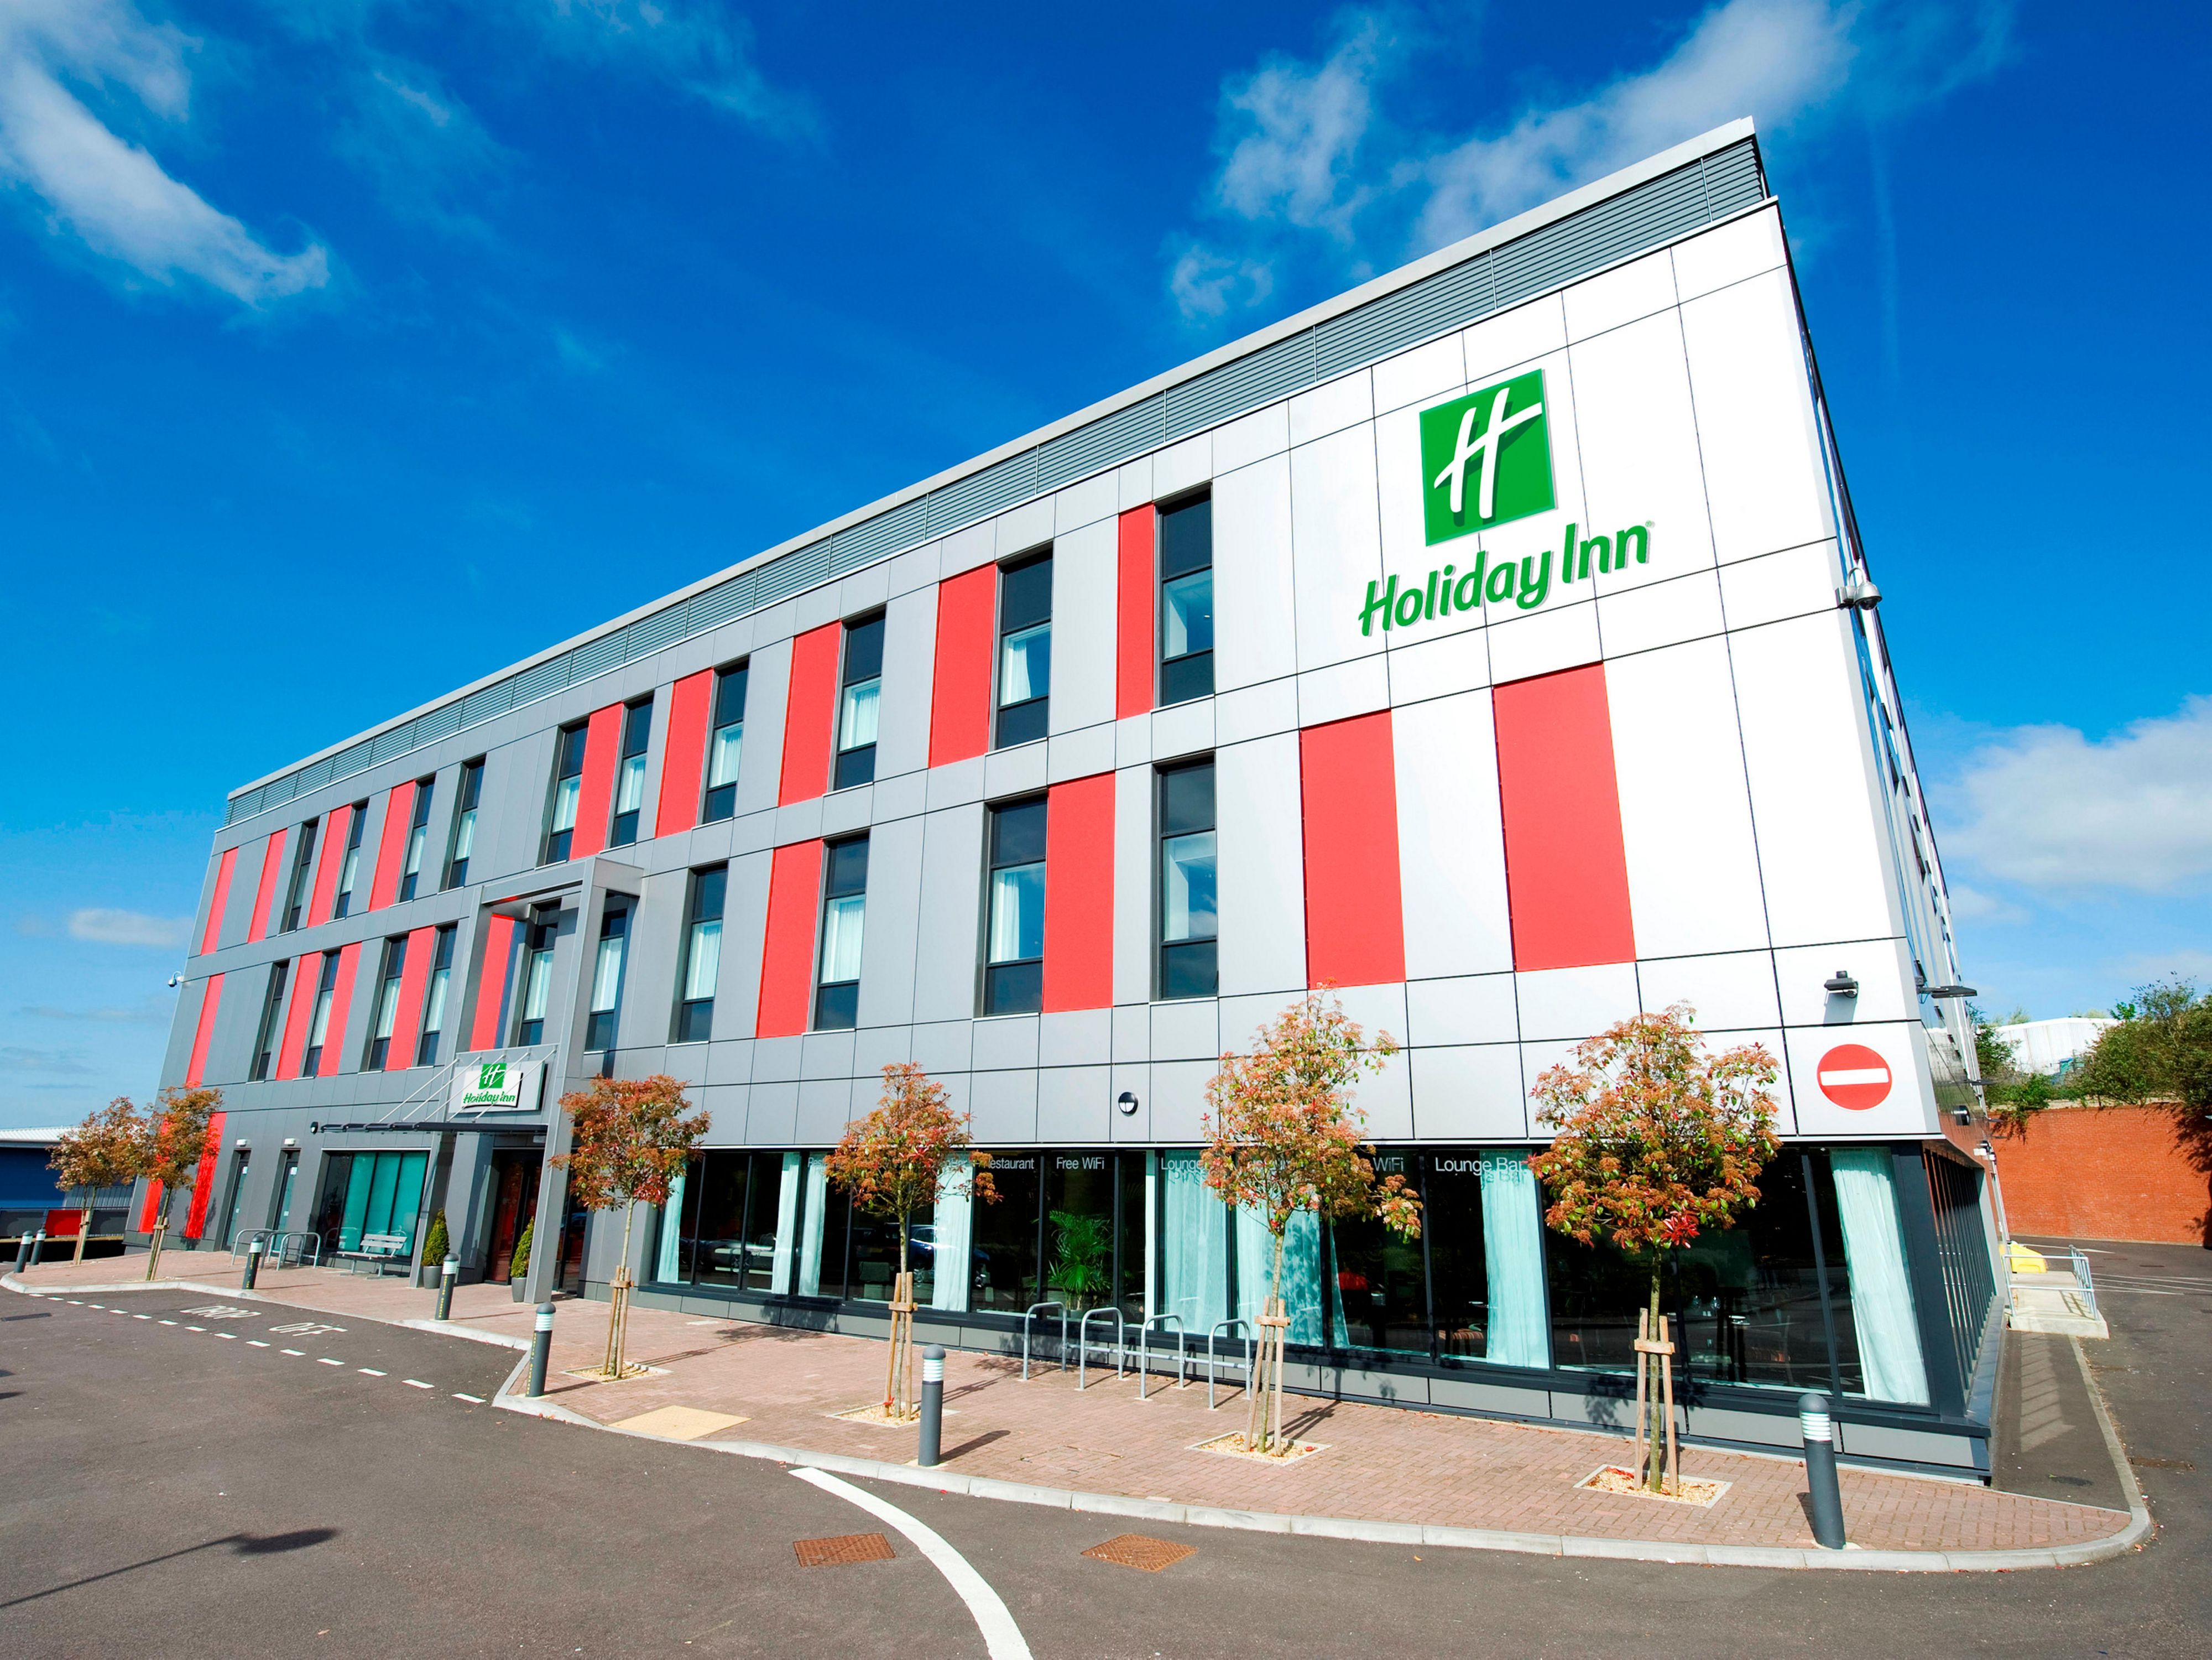 Hotels London Luton Airport England